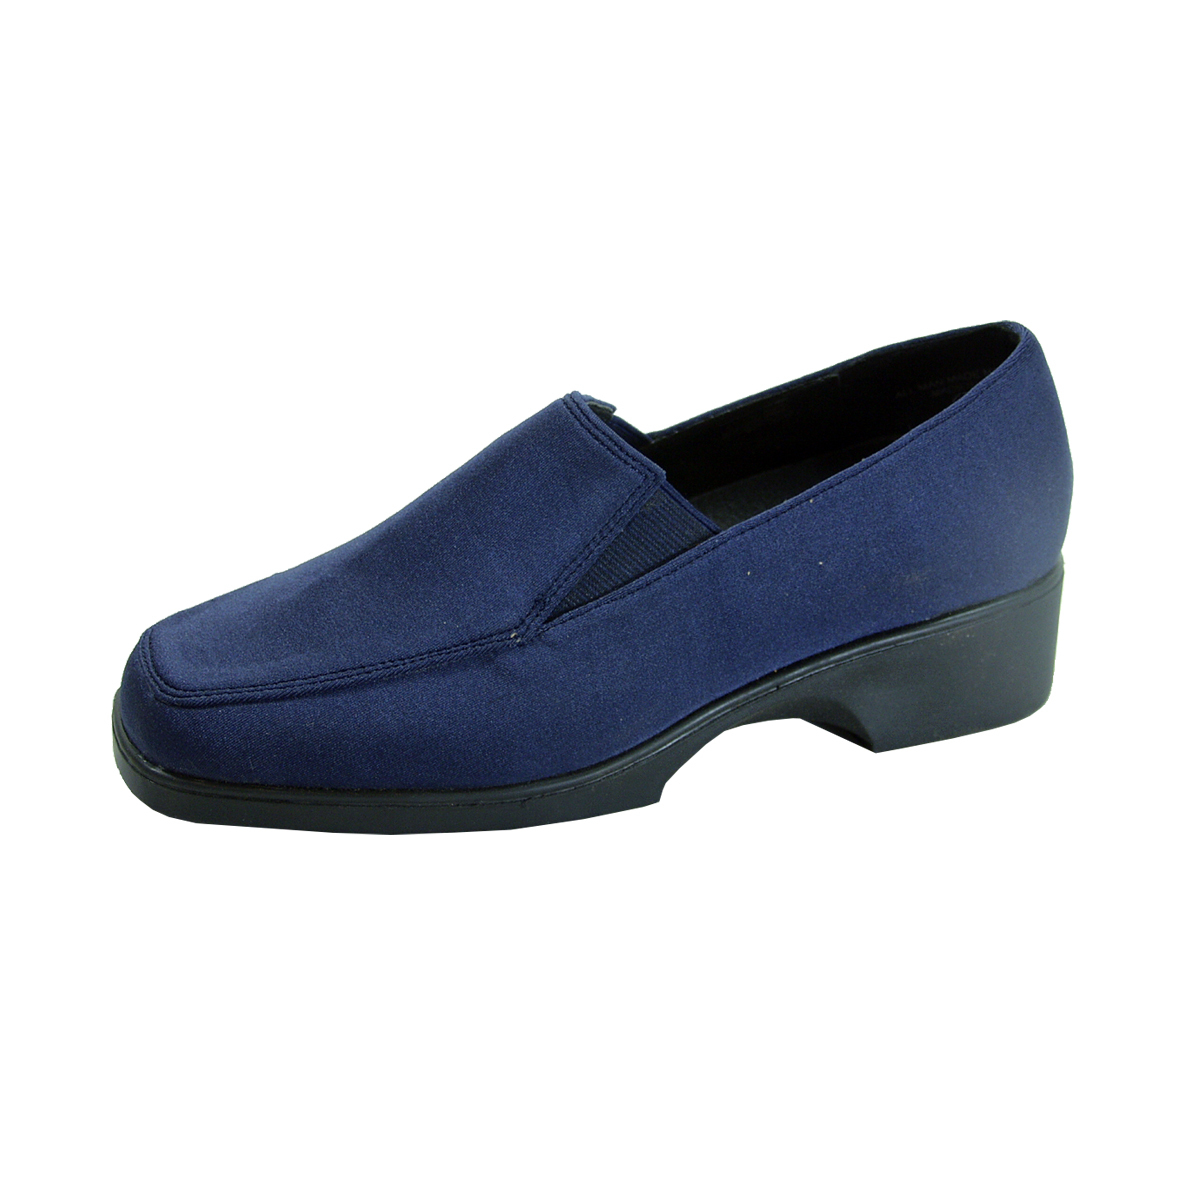 FUZZY Indie Wide Width Classic Slip On Shoes